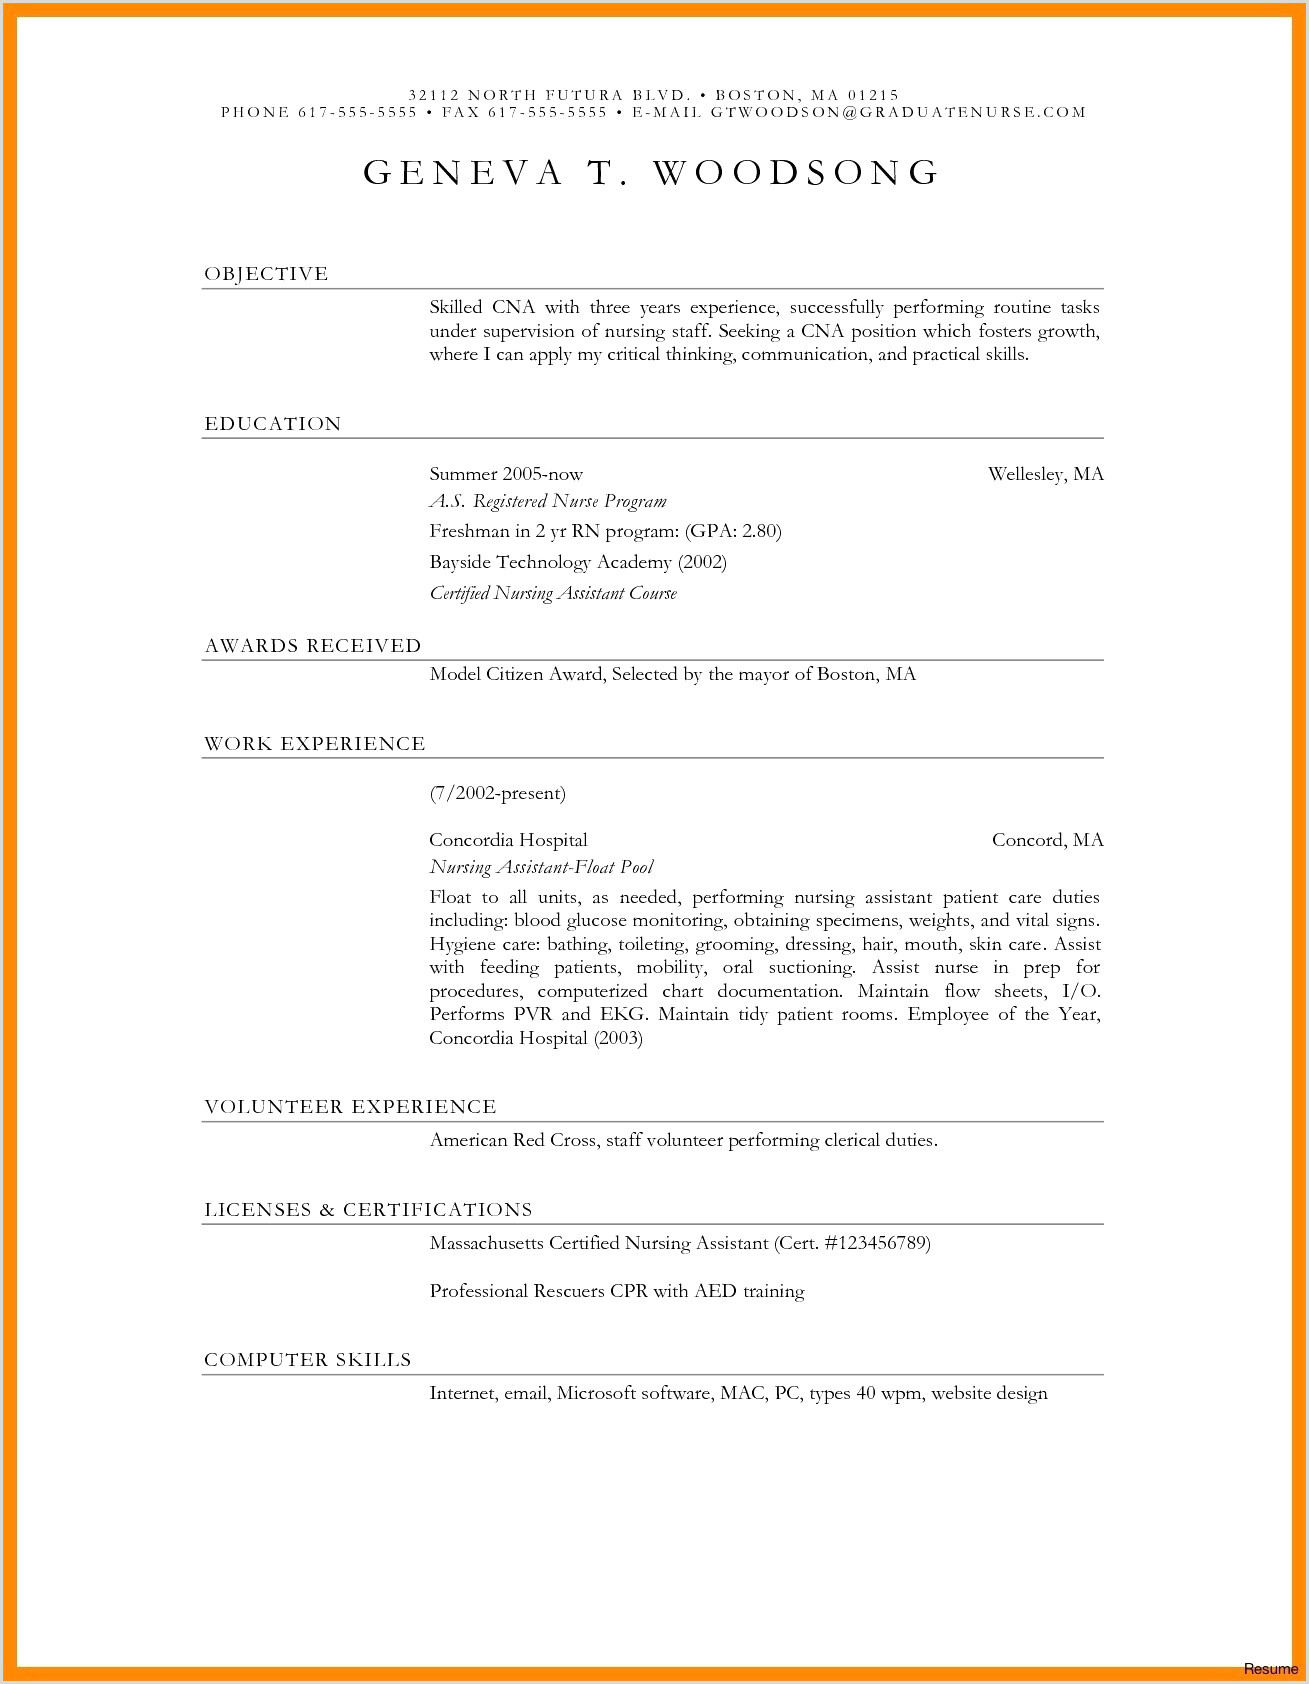 Cv Format For Fresher Teachers In India 45 Exemple Image Cv Xenakisworld